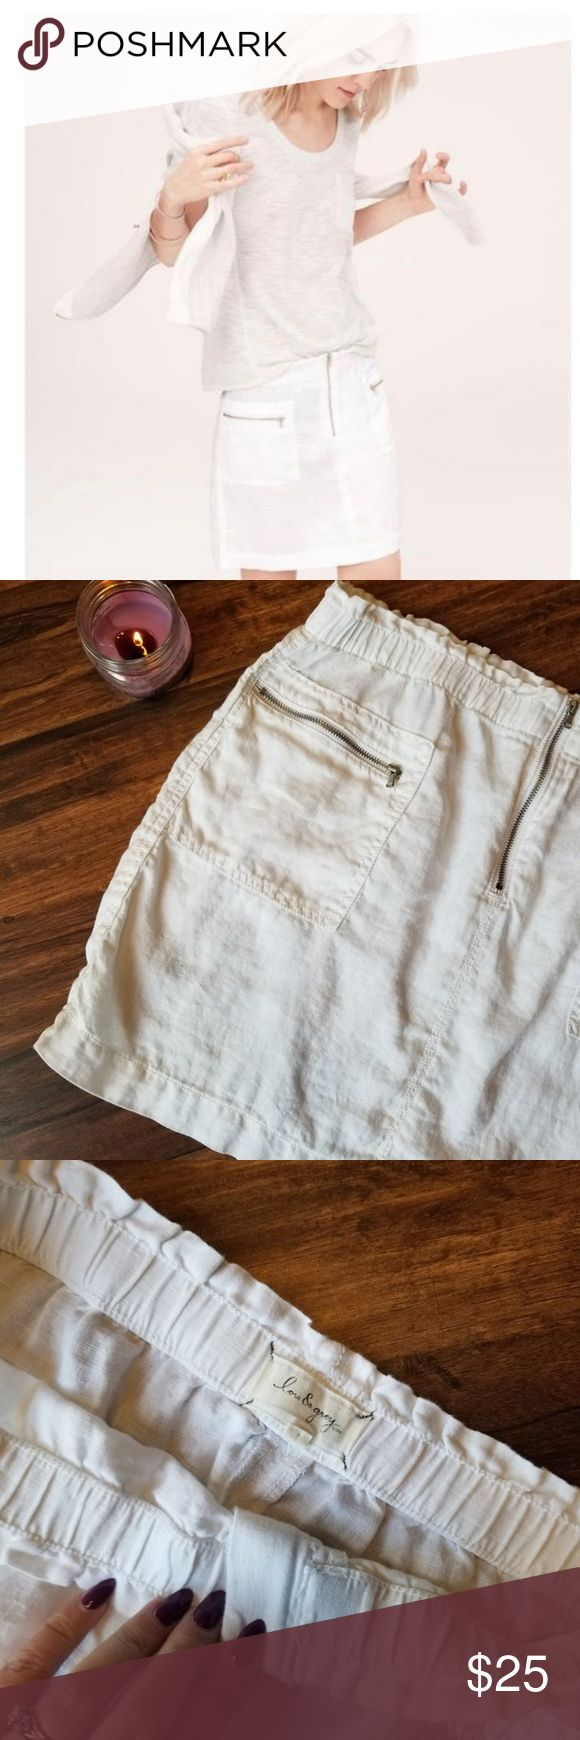 Lou & Grey White Linen Mini Skirt Linen Mini Skirt with silver zipper pockets. and a front silver zipper.  Condition: EUC  Retail: $79 Size: M  Length: 16 MAKE A REASONABLE OFFER OR ADD TO A BUNDLE FOR A PRIVATE OFFER!  #23 Lou & Grey White Linen Mini Skirt Lou & Grey Skirts Mini